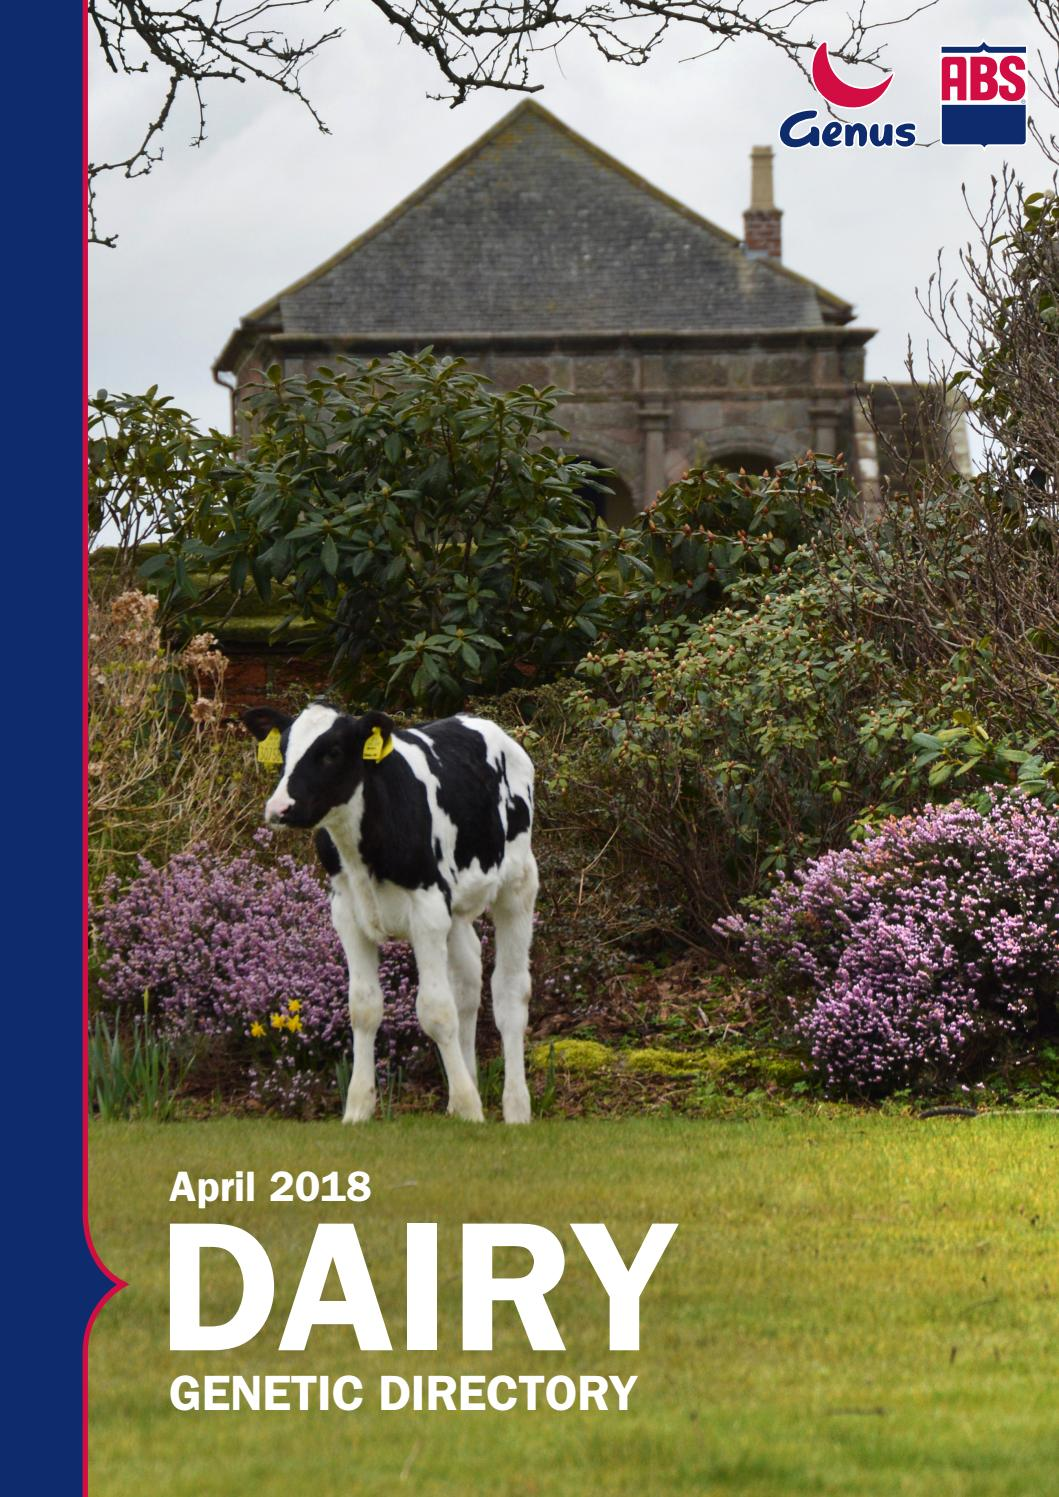 GB Dairy Directory April18 by Genus ABS - issuu